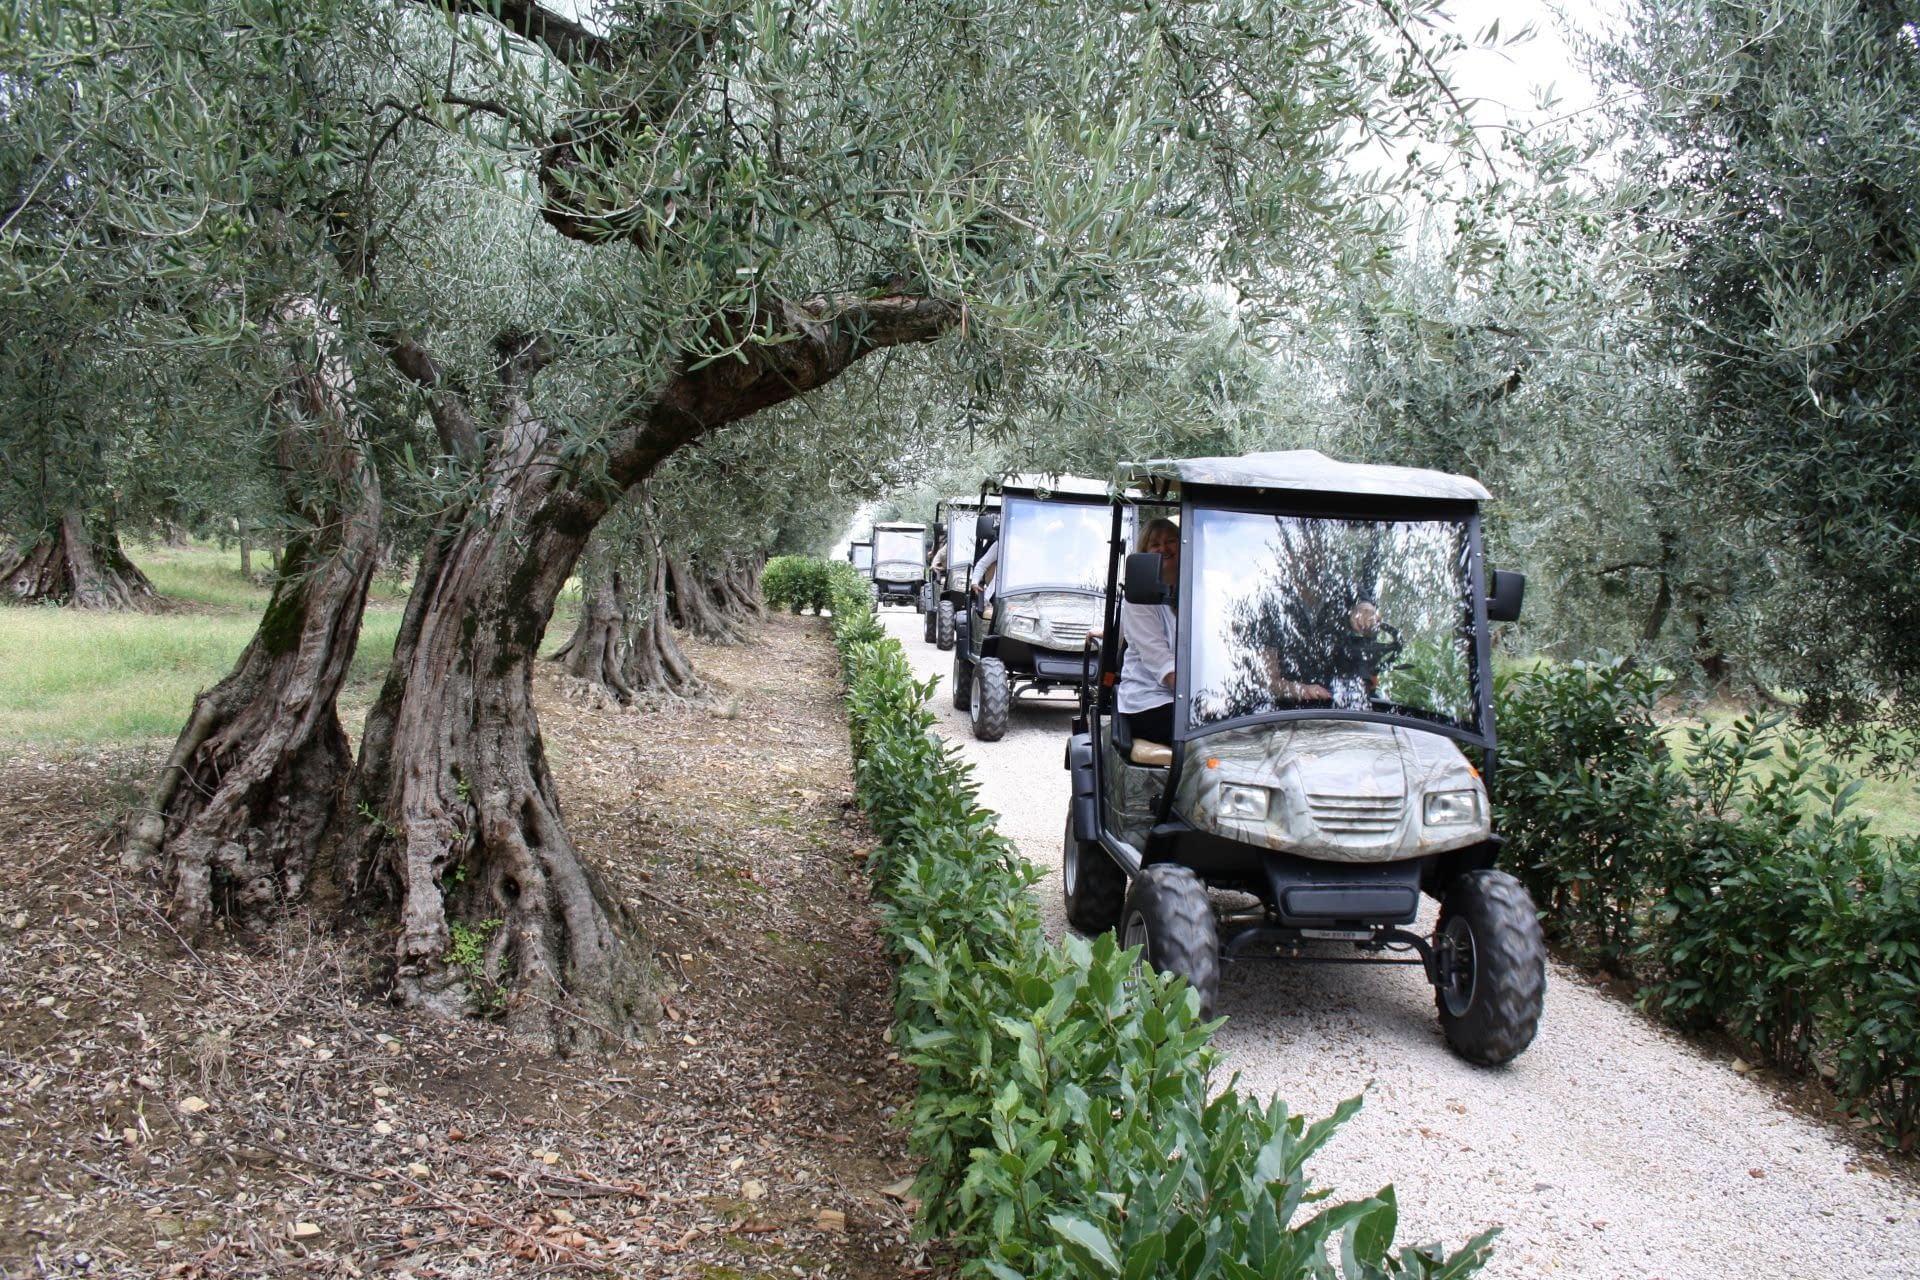 profiles-production-history-and-innovation-guide-an-awardwinning-producer-in-umbria-olive-oil-times